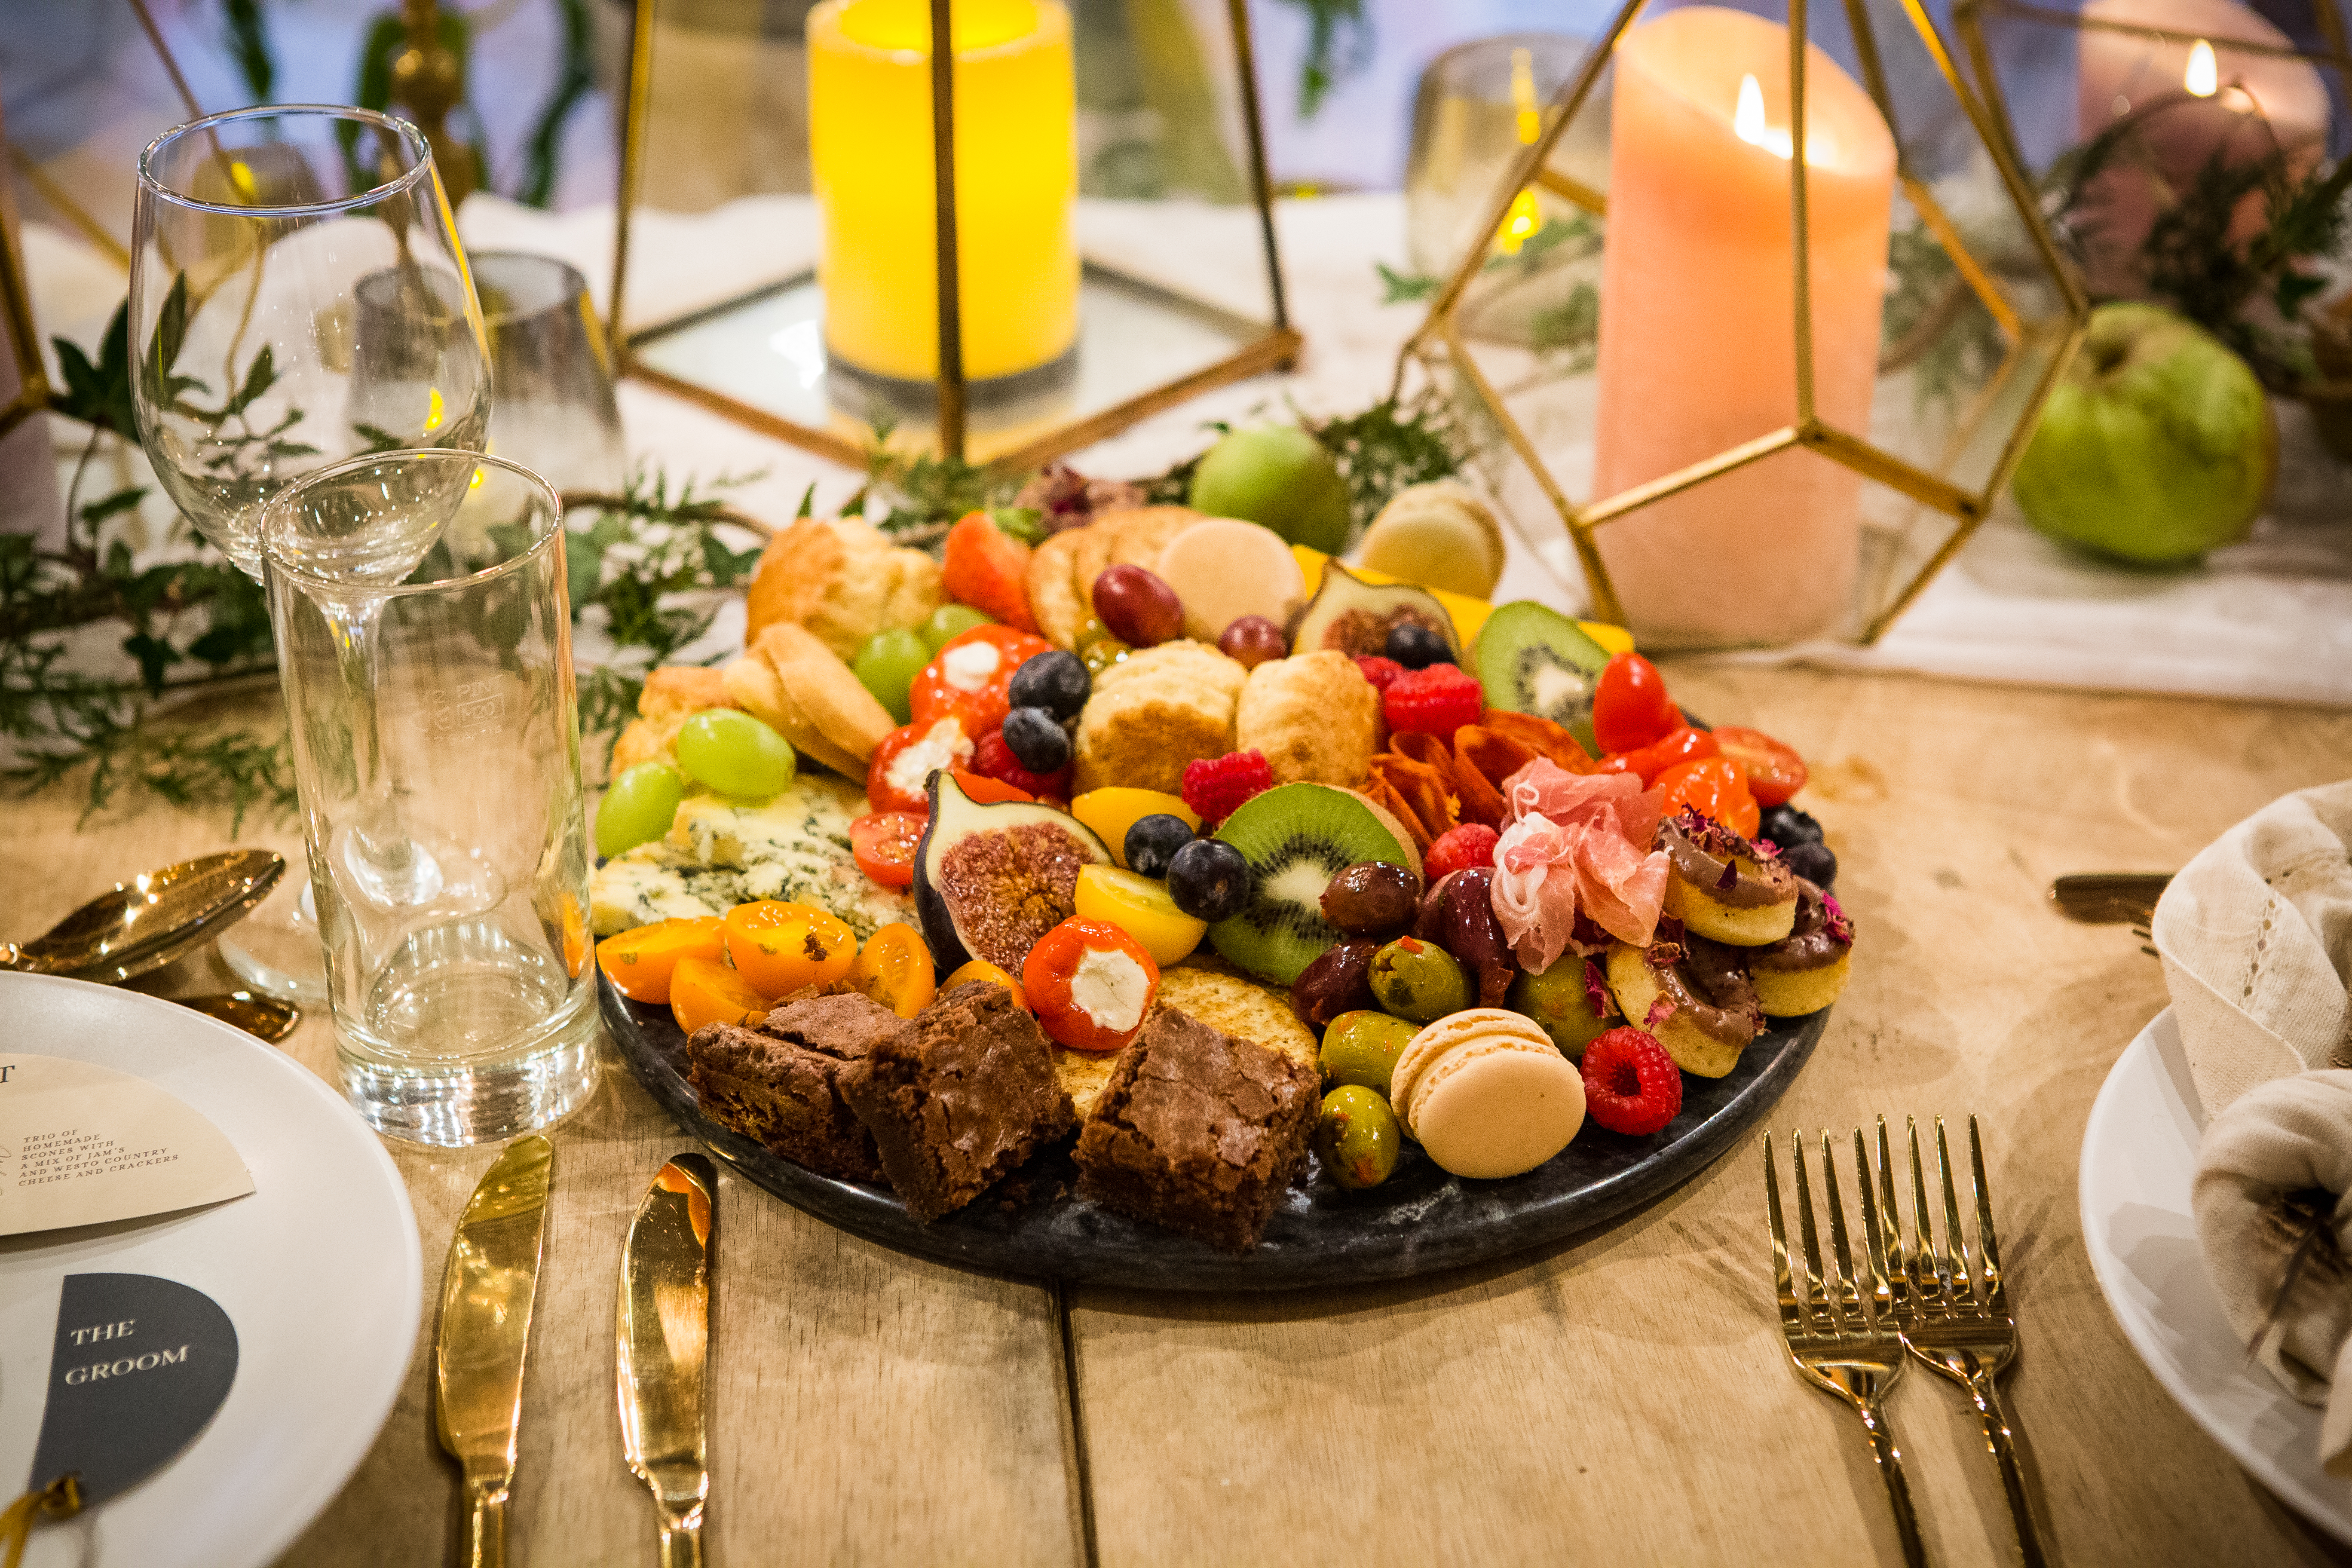 A sweet & savoury sharing platted for a top table at a wedding.